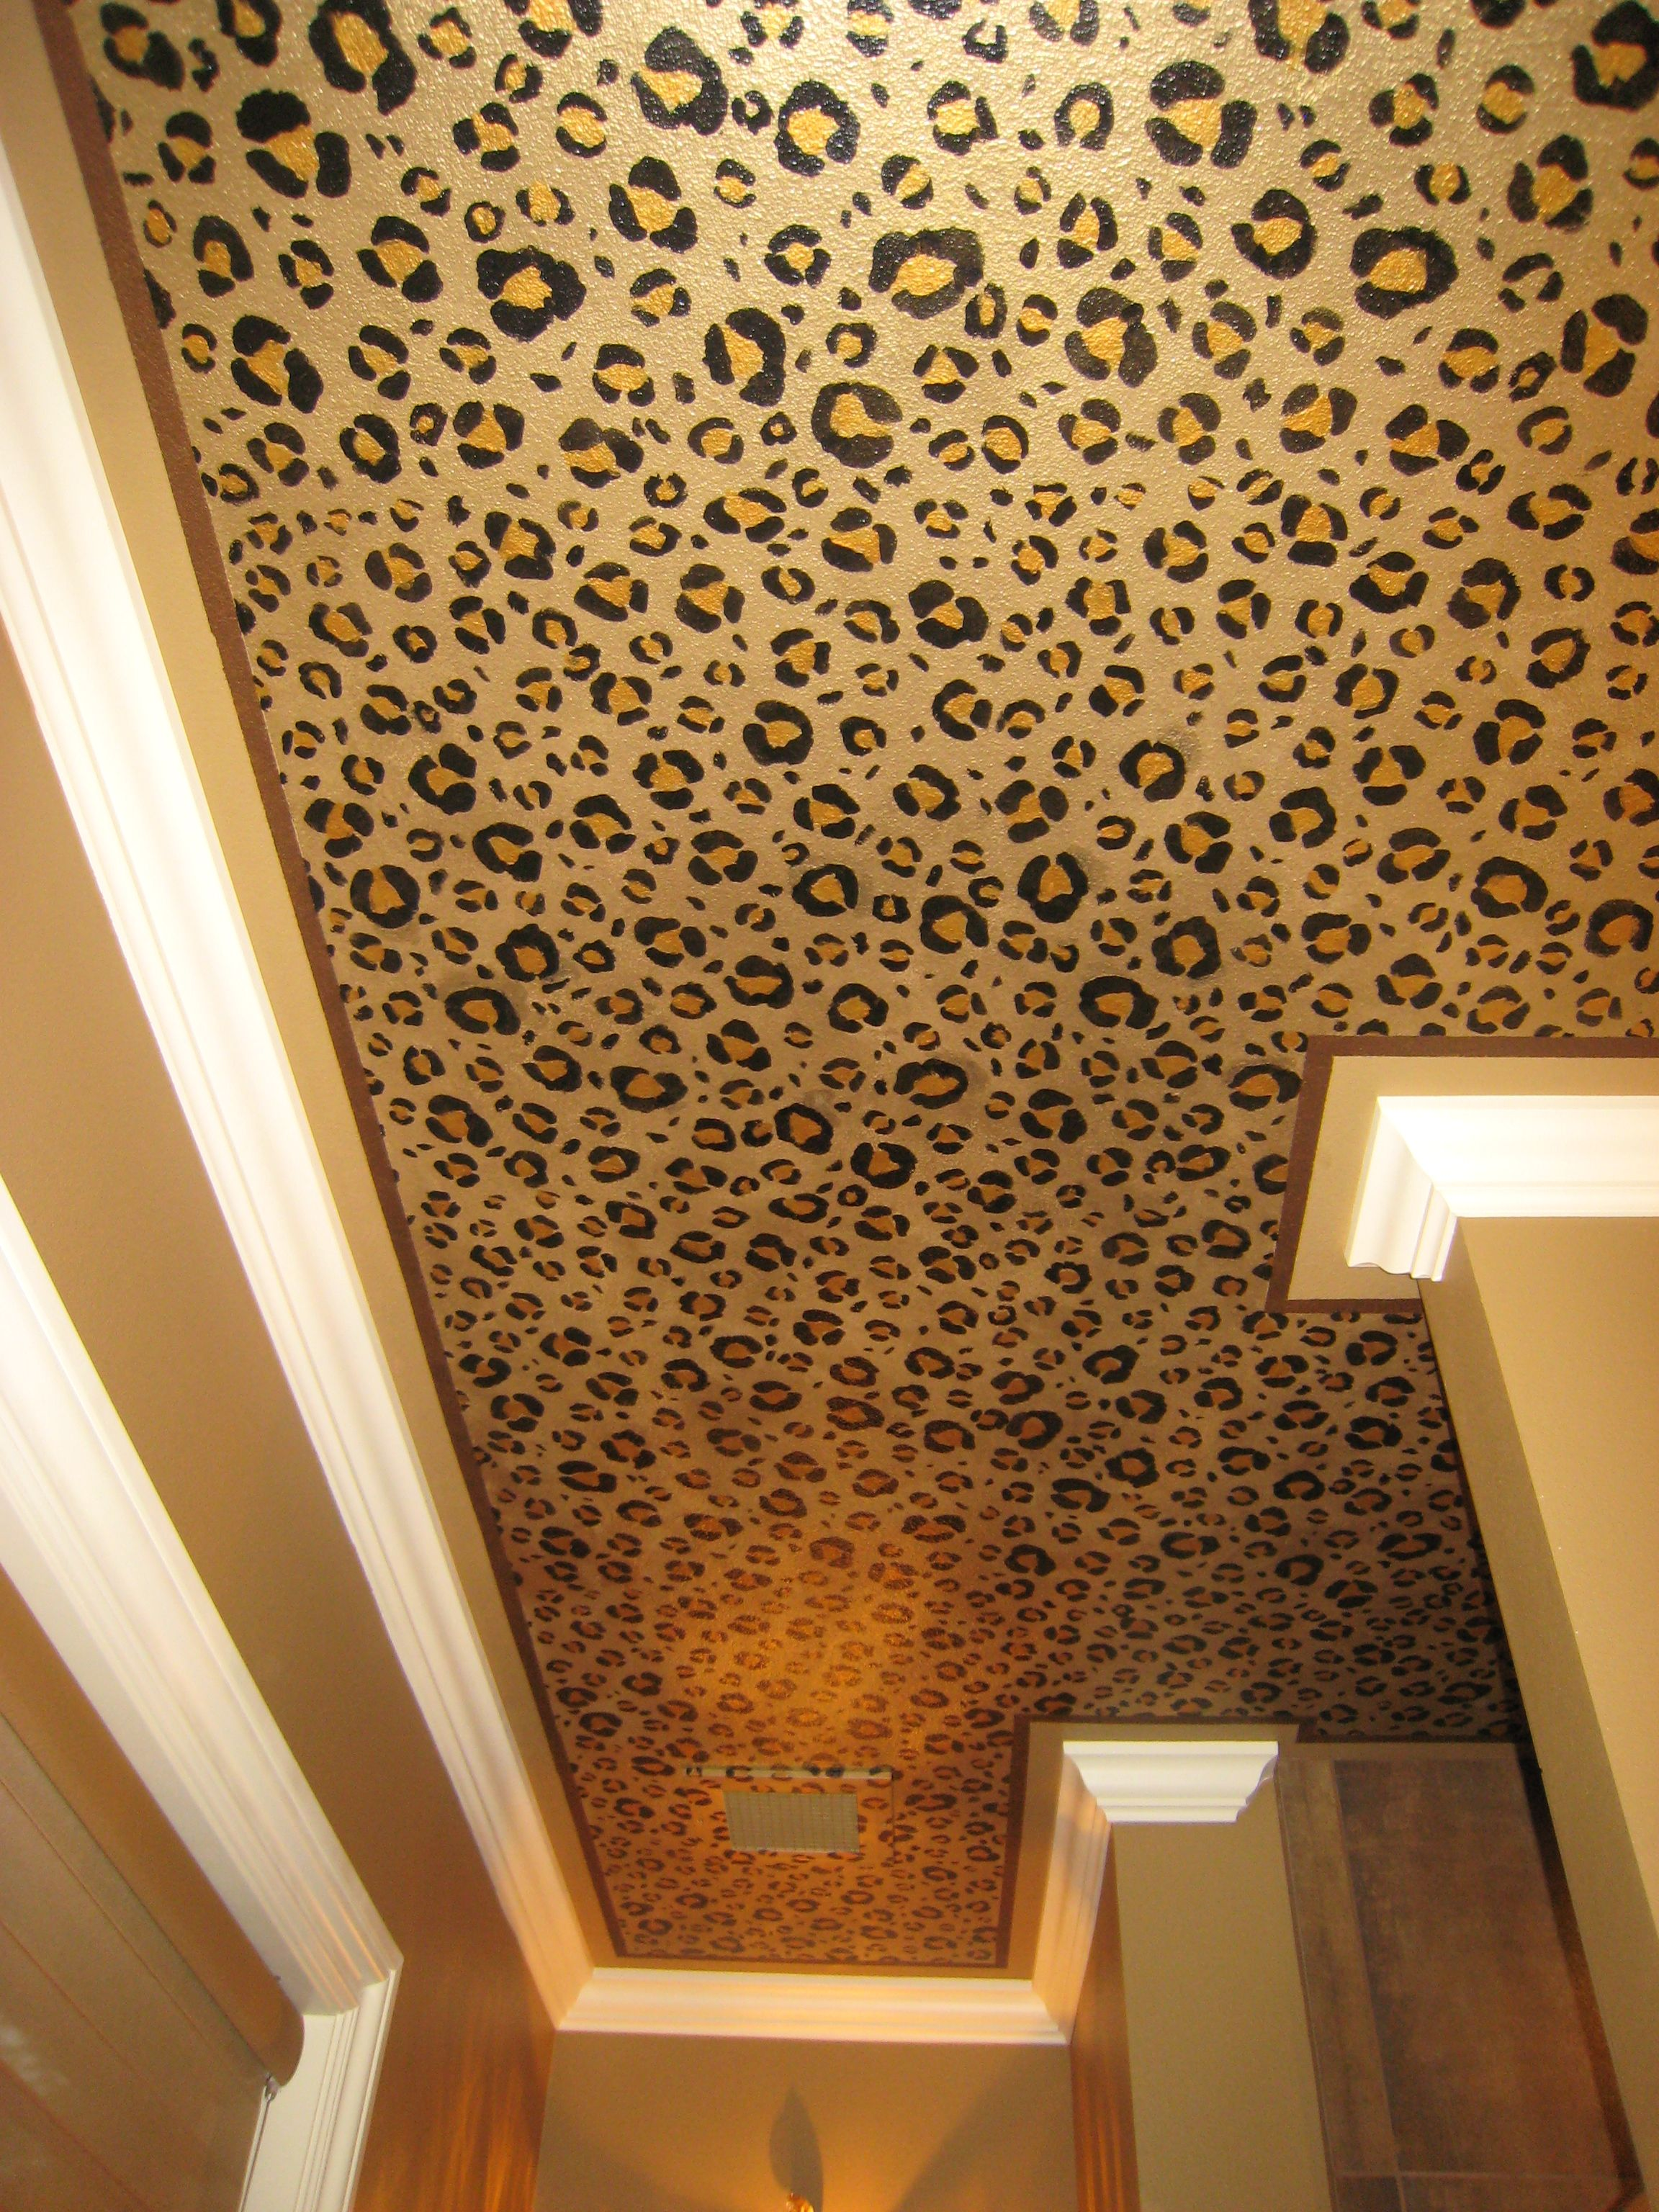 Leopard Ceiling Love Decor Leopard Wall Leopard